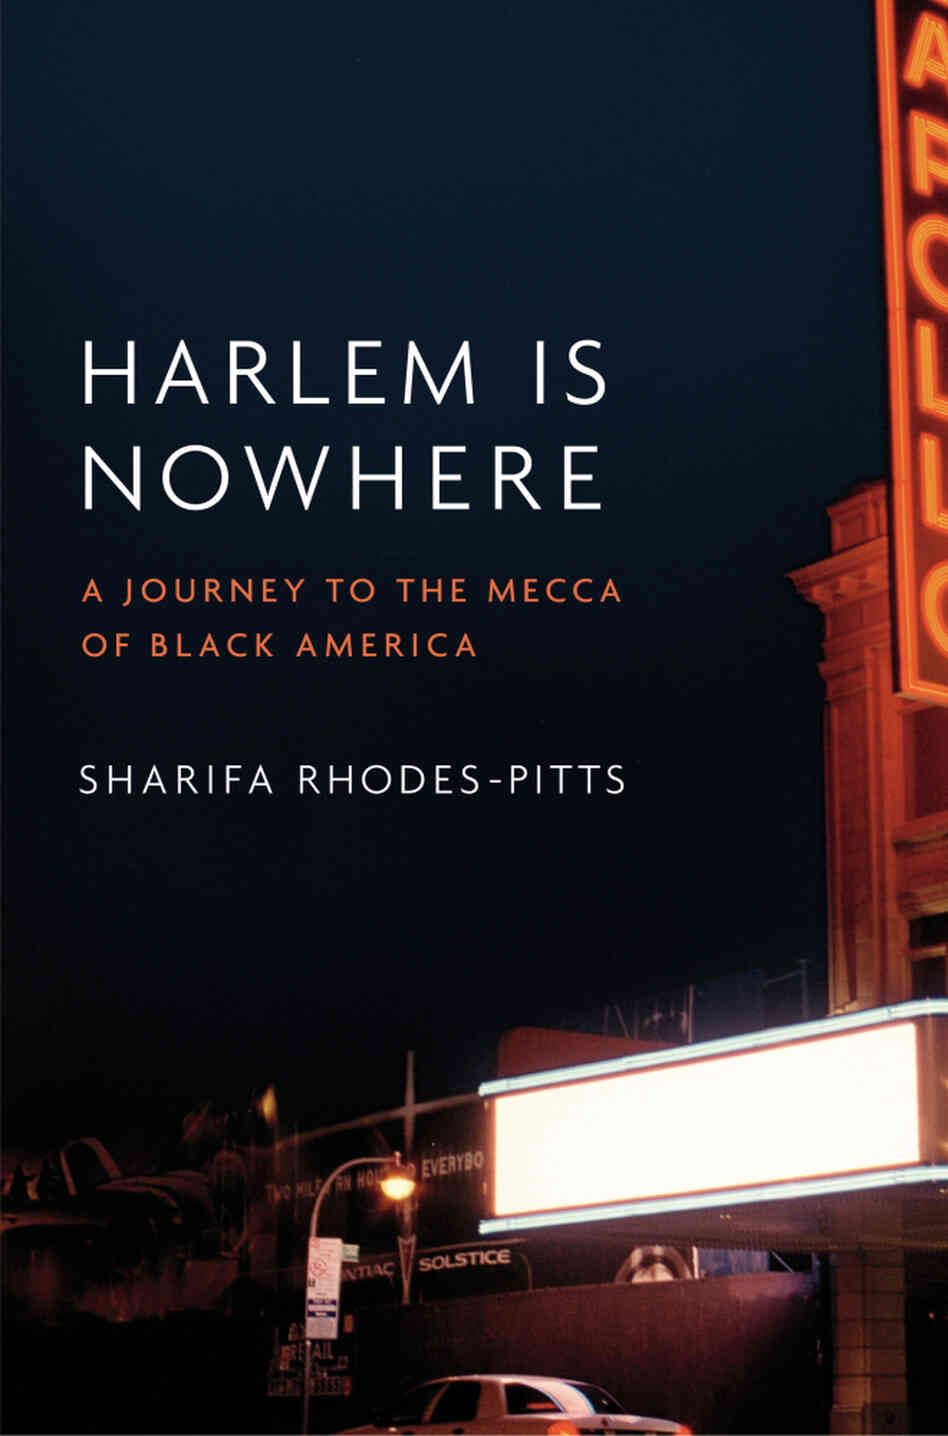 Harlem is Nowhere